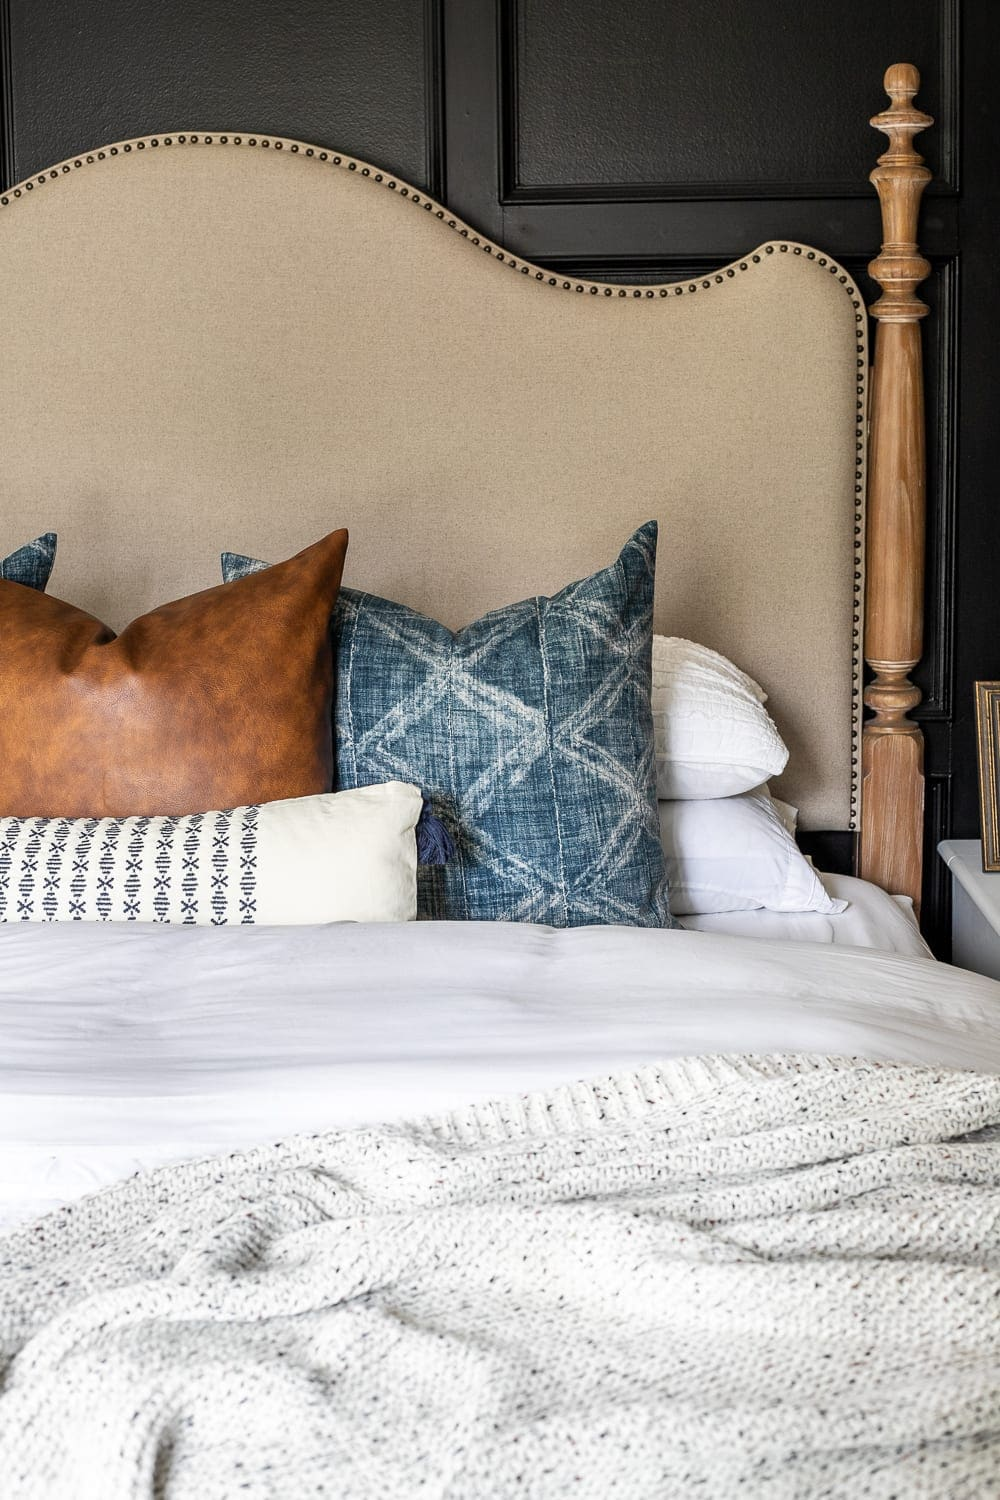 7 Tricks To Make Your Bed Fluffy For Less Bless Er House